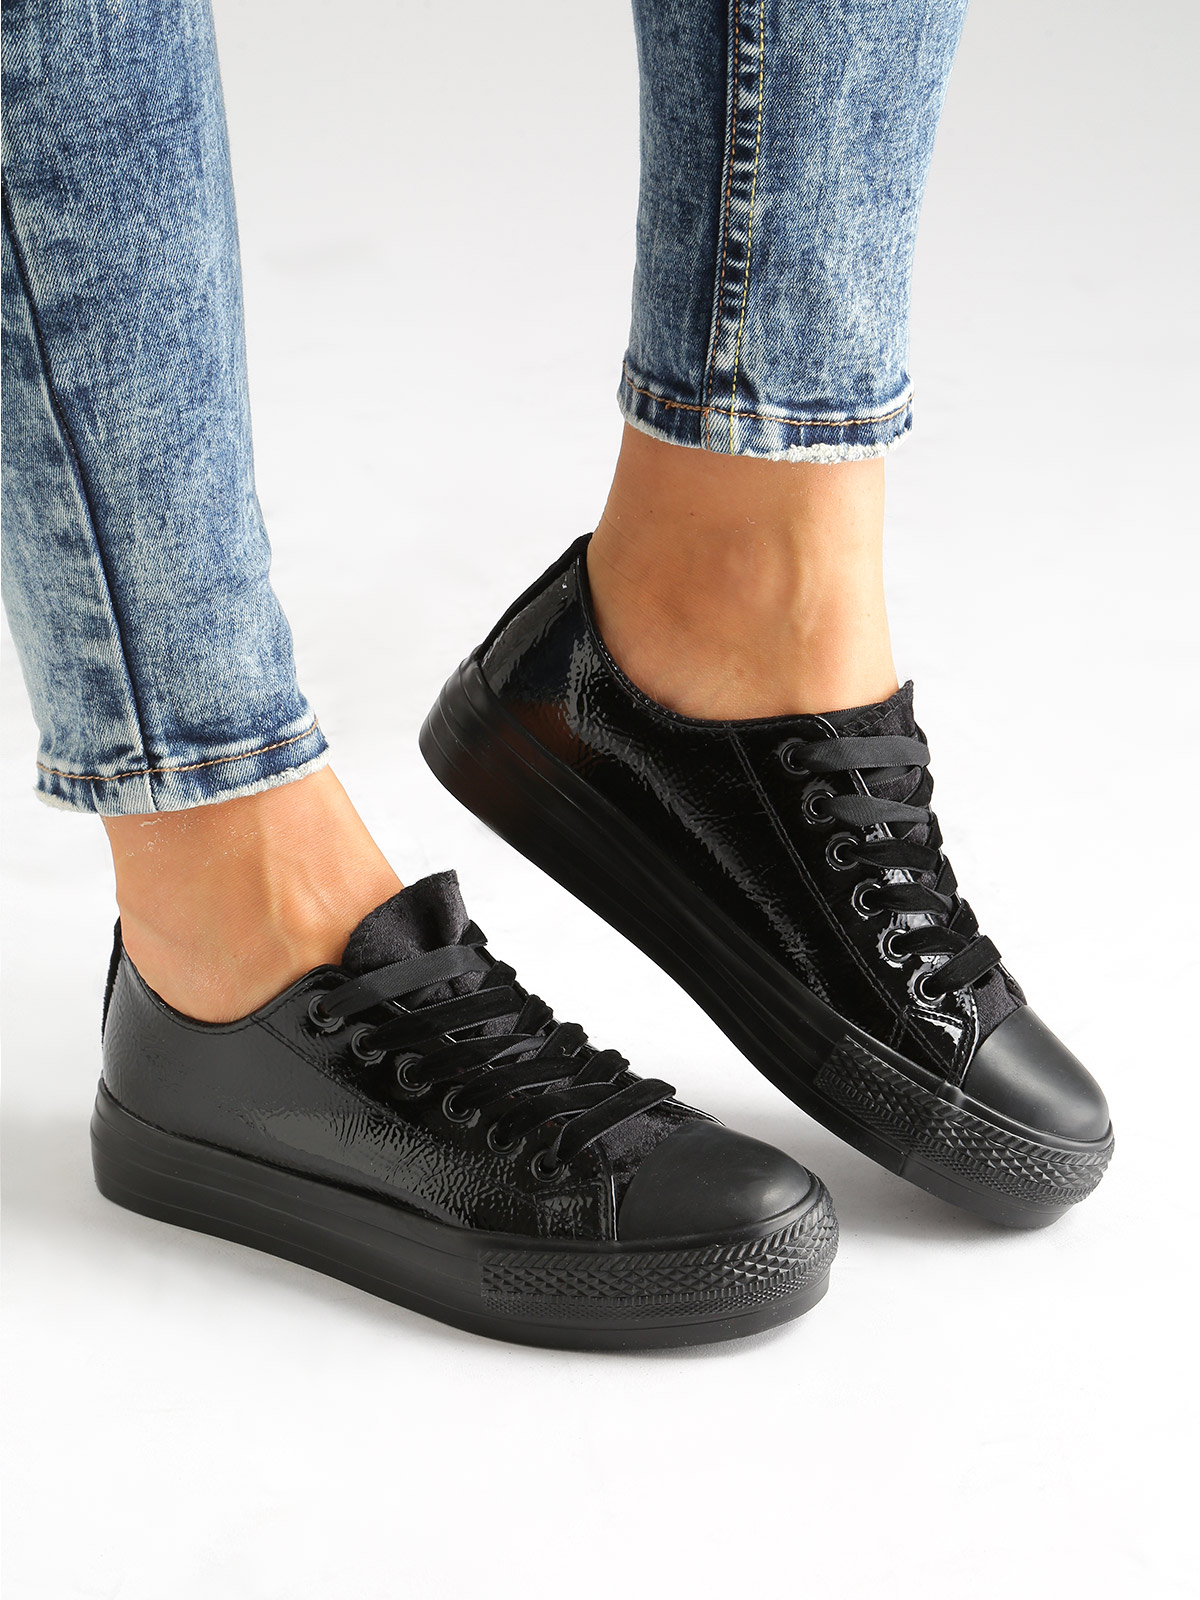 OMS Sneakers Lace-up Shoes With Platform